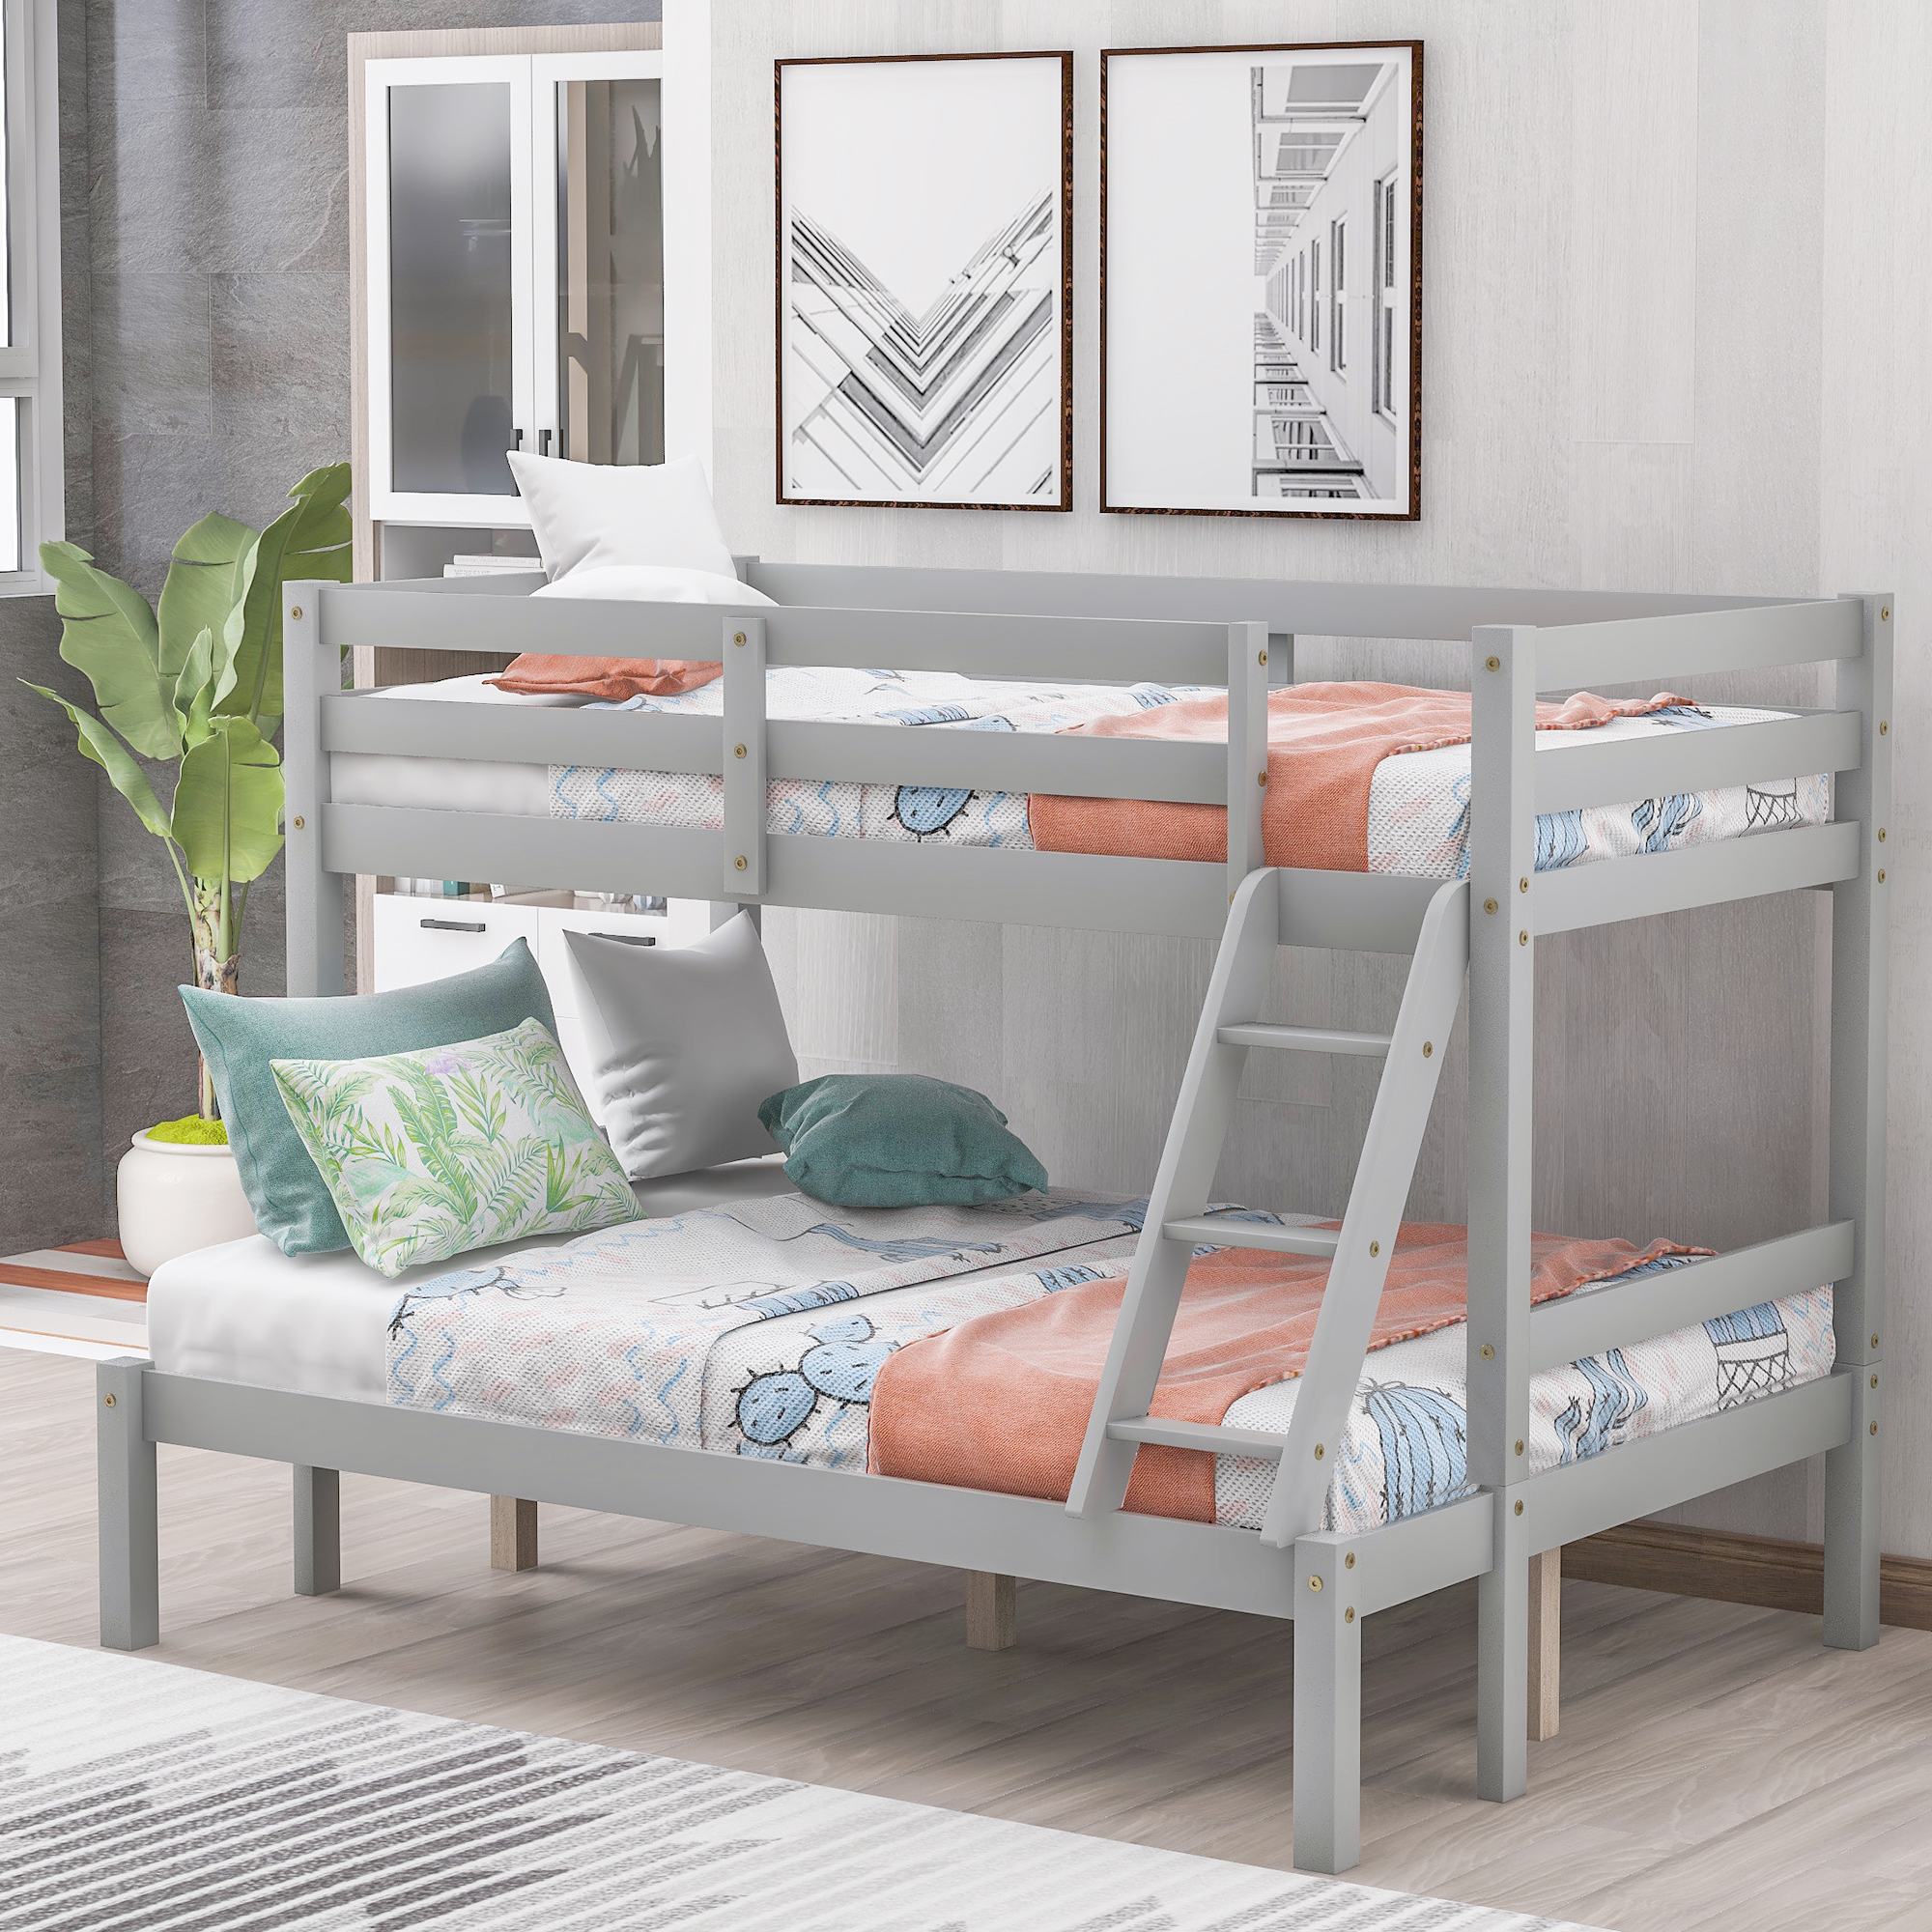 clearance bunk beds for kids urhomepro wood twin over on walmart bedroom furniture clearance id=70752